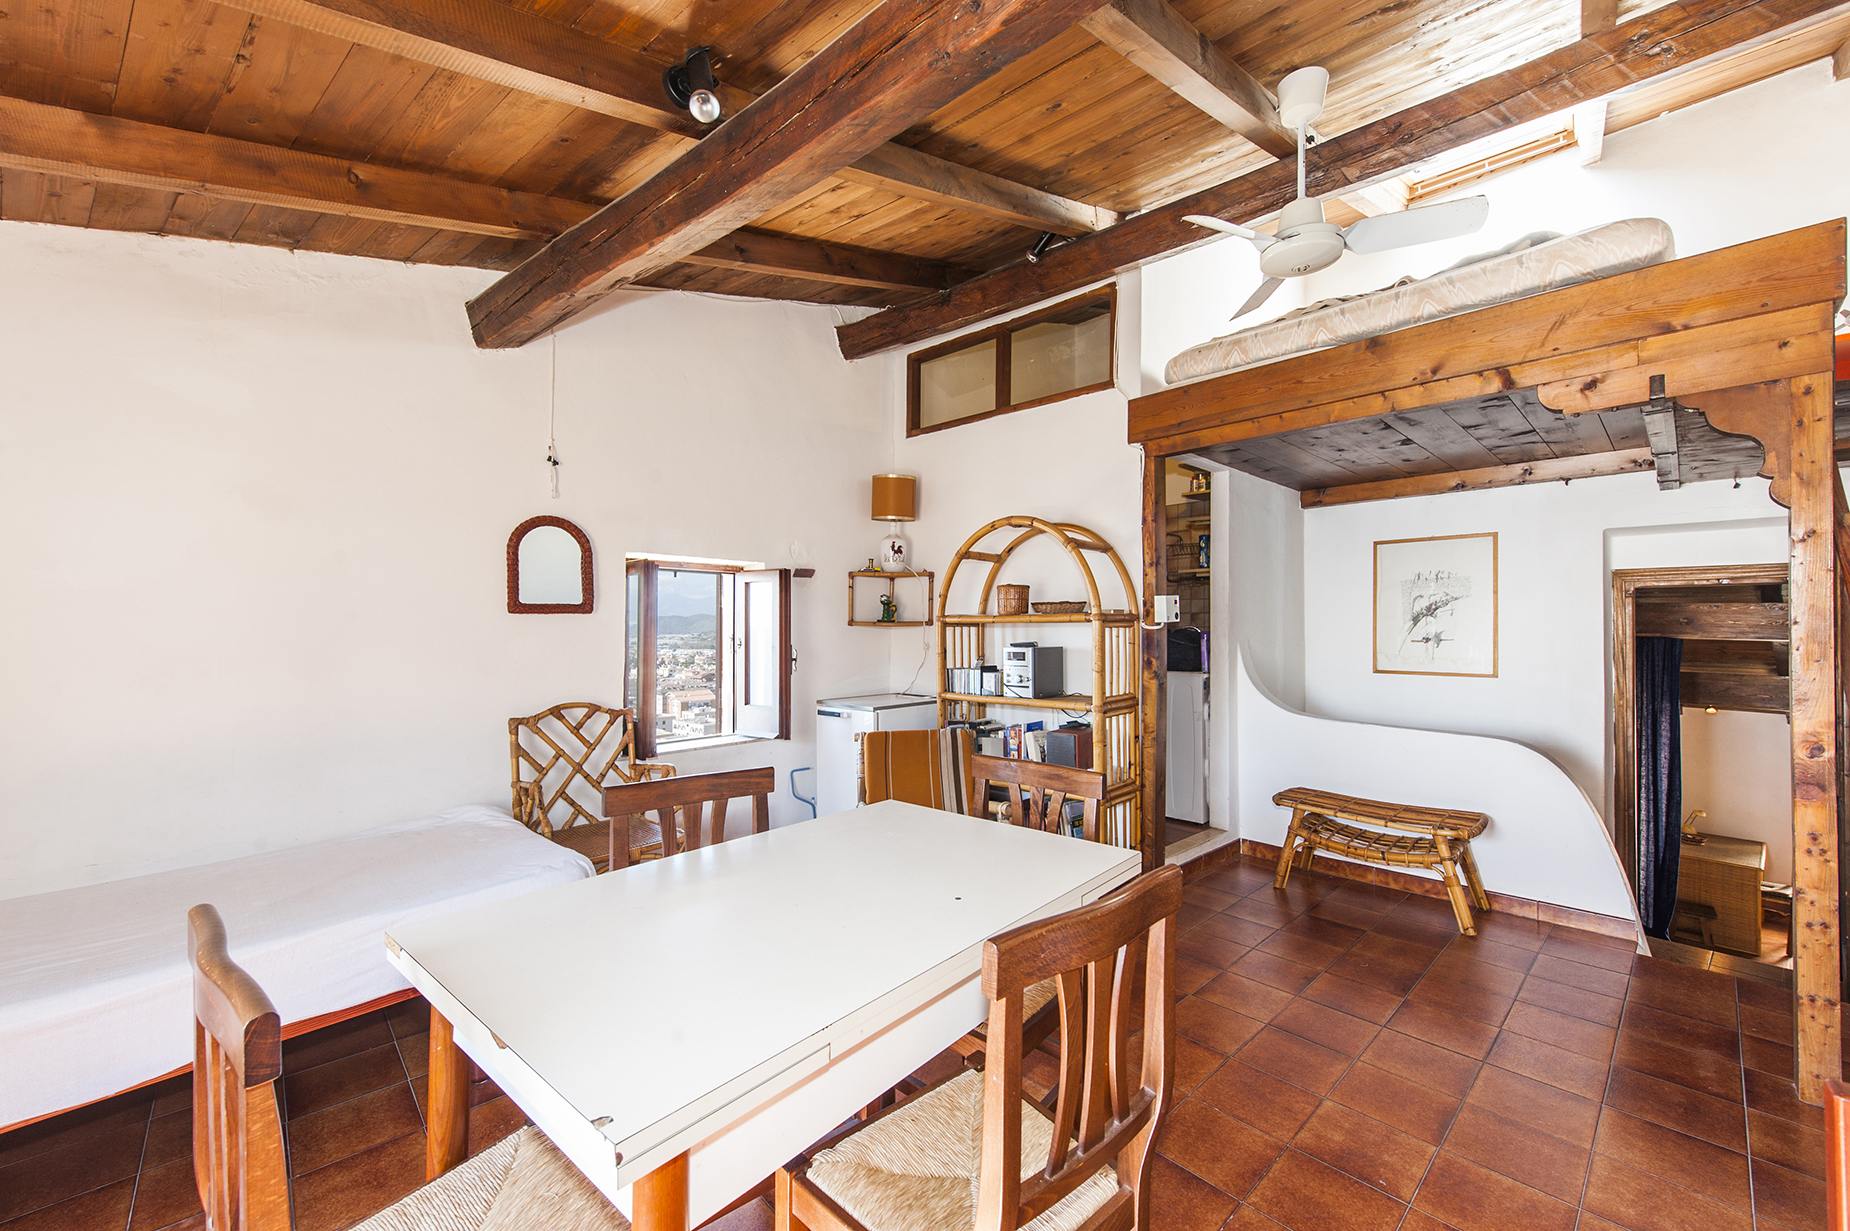 Additional photo for property listing at Charming apartment in Sperlonga with panoramic sea view Via Giosa Sperlonga, Latina 04029 Italie